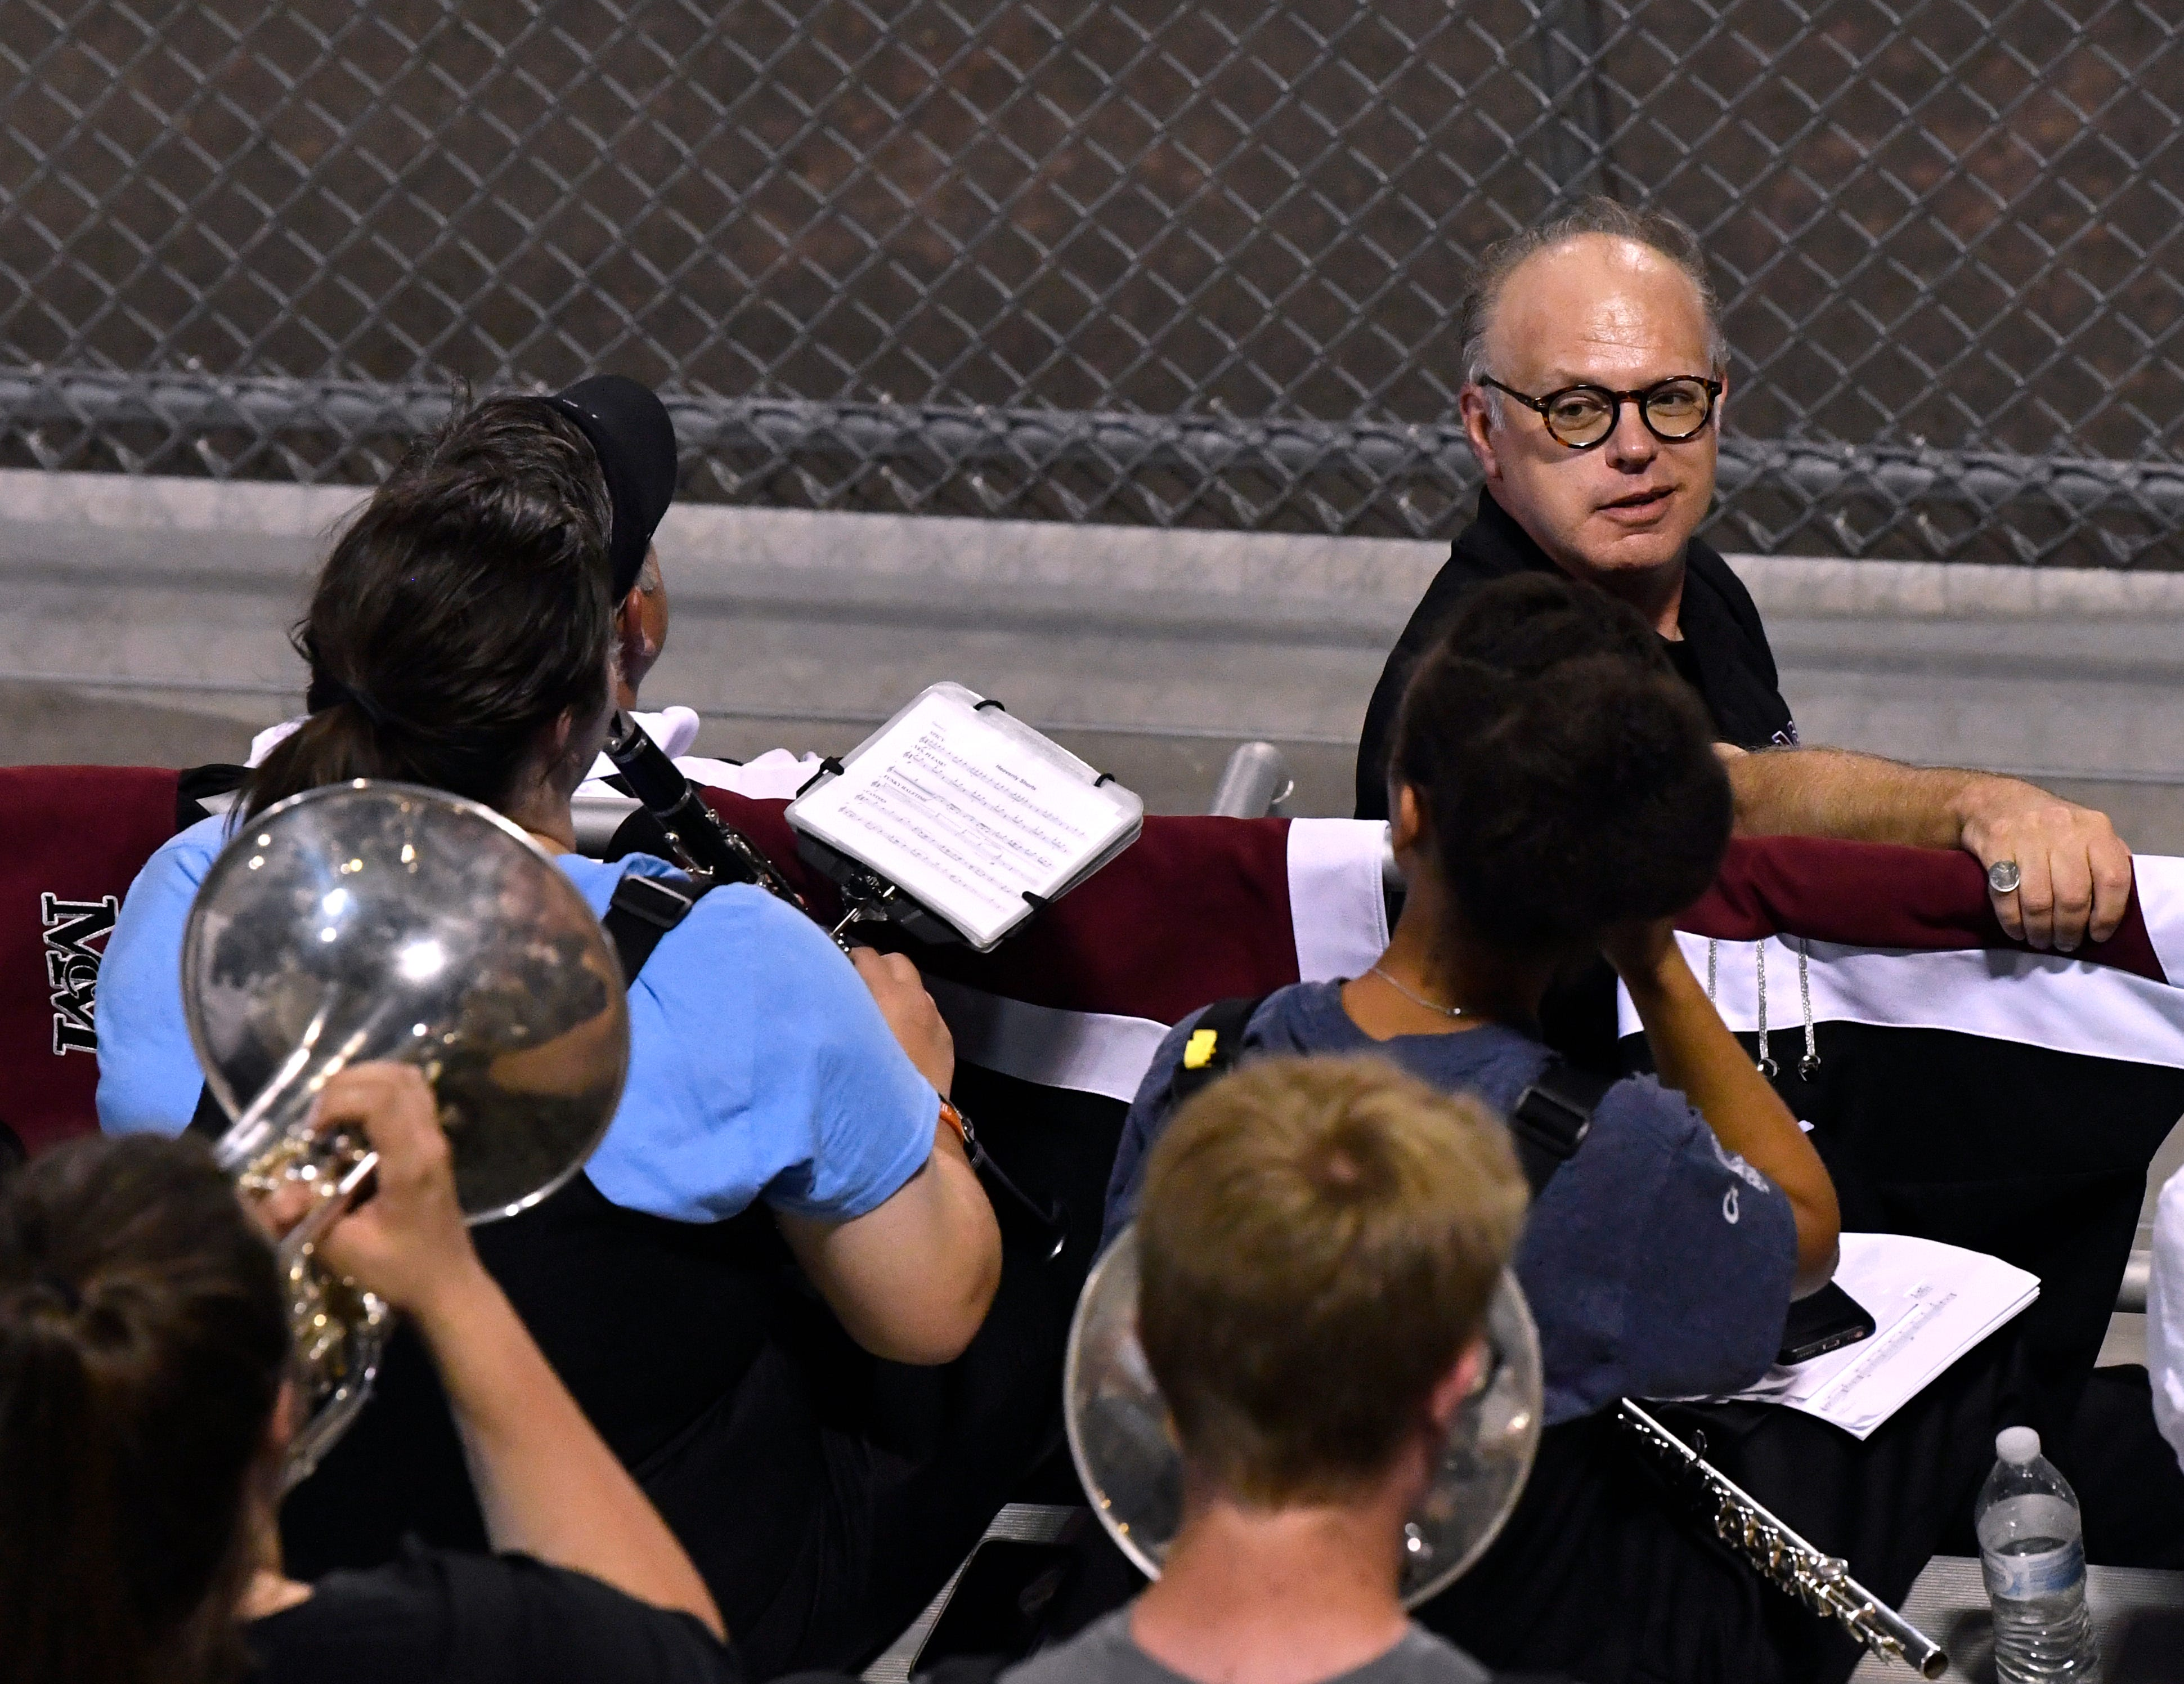 McMurry University's new director of bands, Dr. Patrick Fortney, listens to the War Hawk band during Thursday's football game against Trinity University.